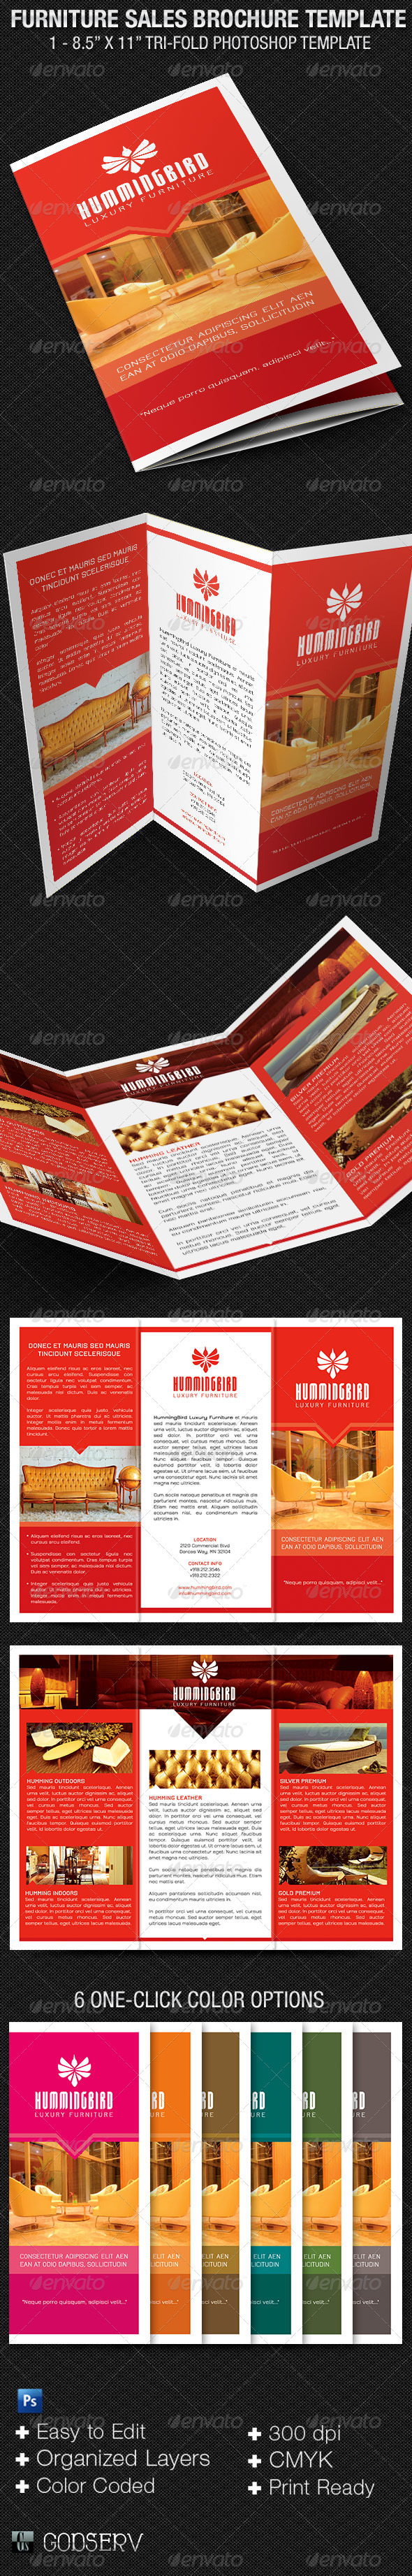 GraphicRiver Furniture Sales Brochure Template 6286346